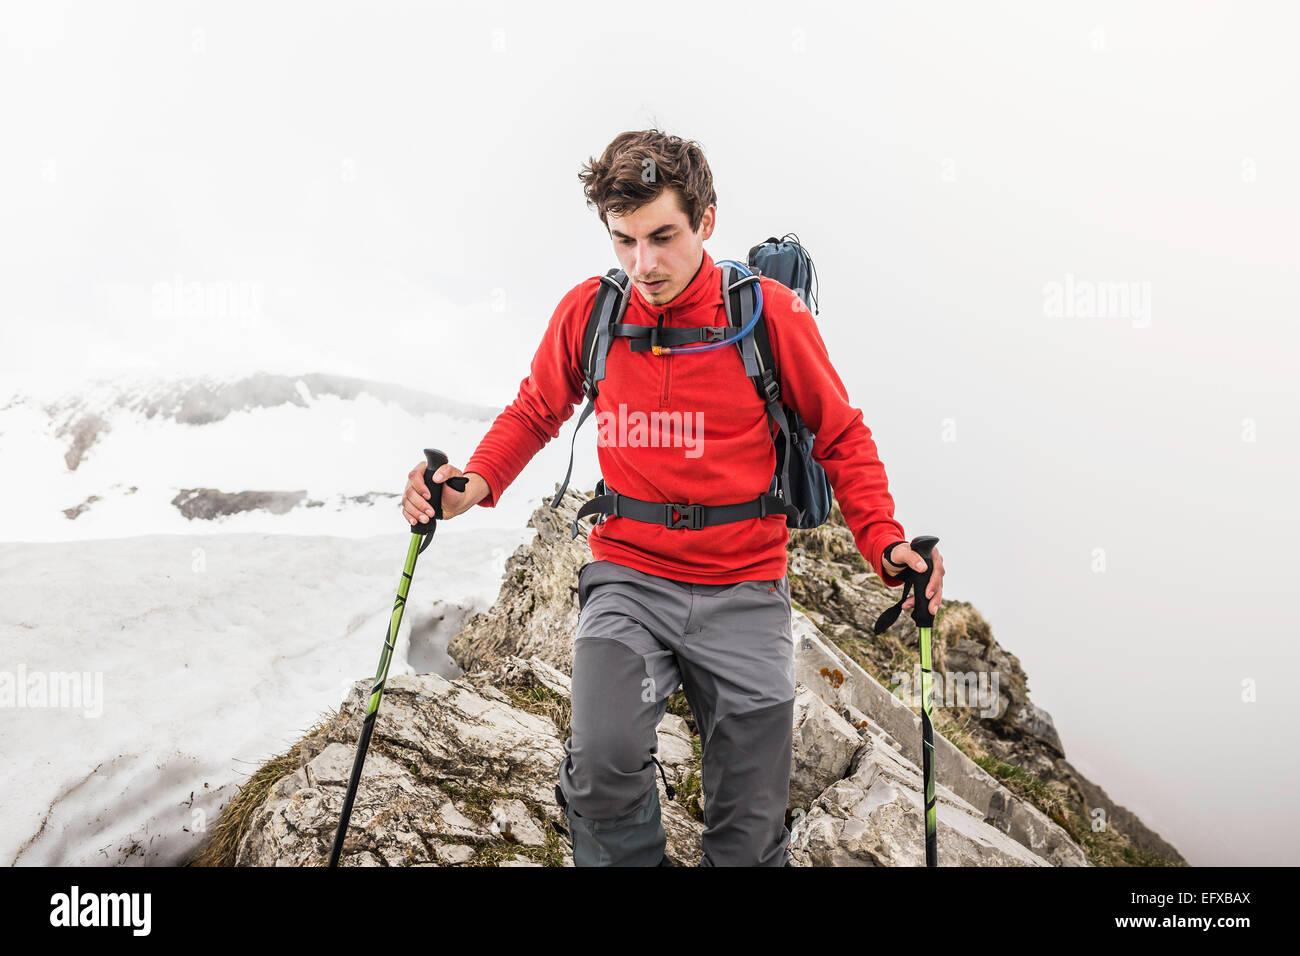 Young man trekking in Bavarian Alps, Oberstdorf, Bavaria, Germany - Stock Image